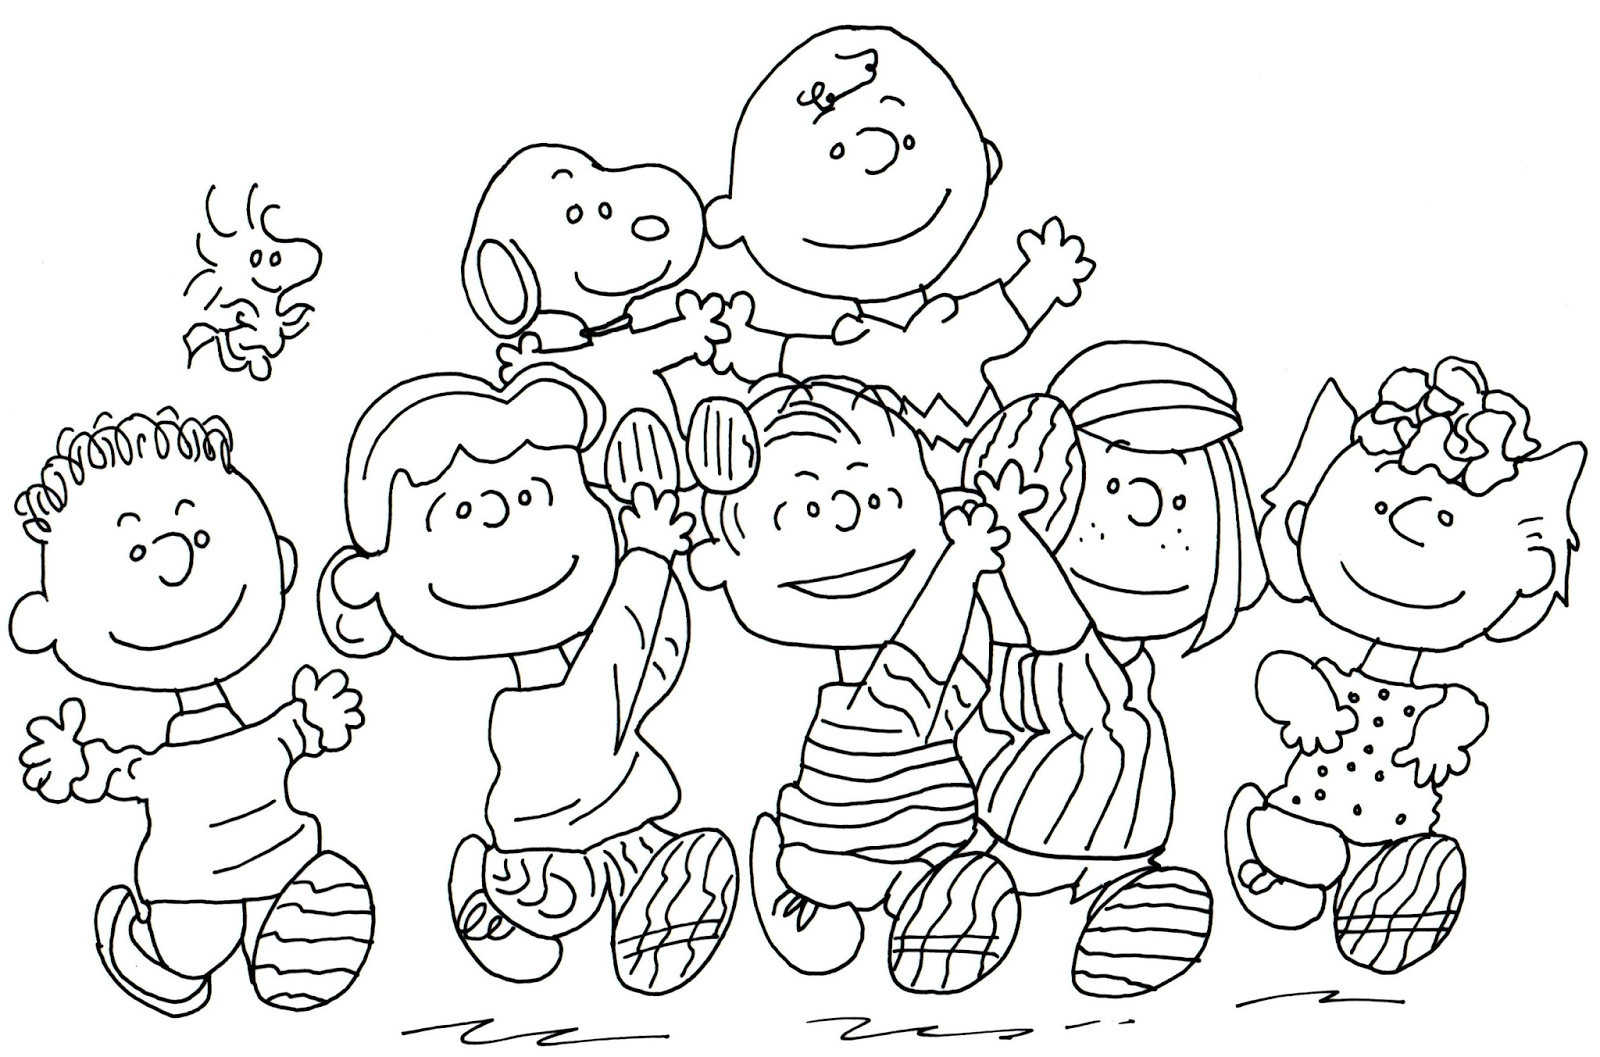 penuts coloring pages - photo#14